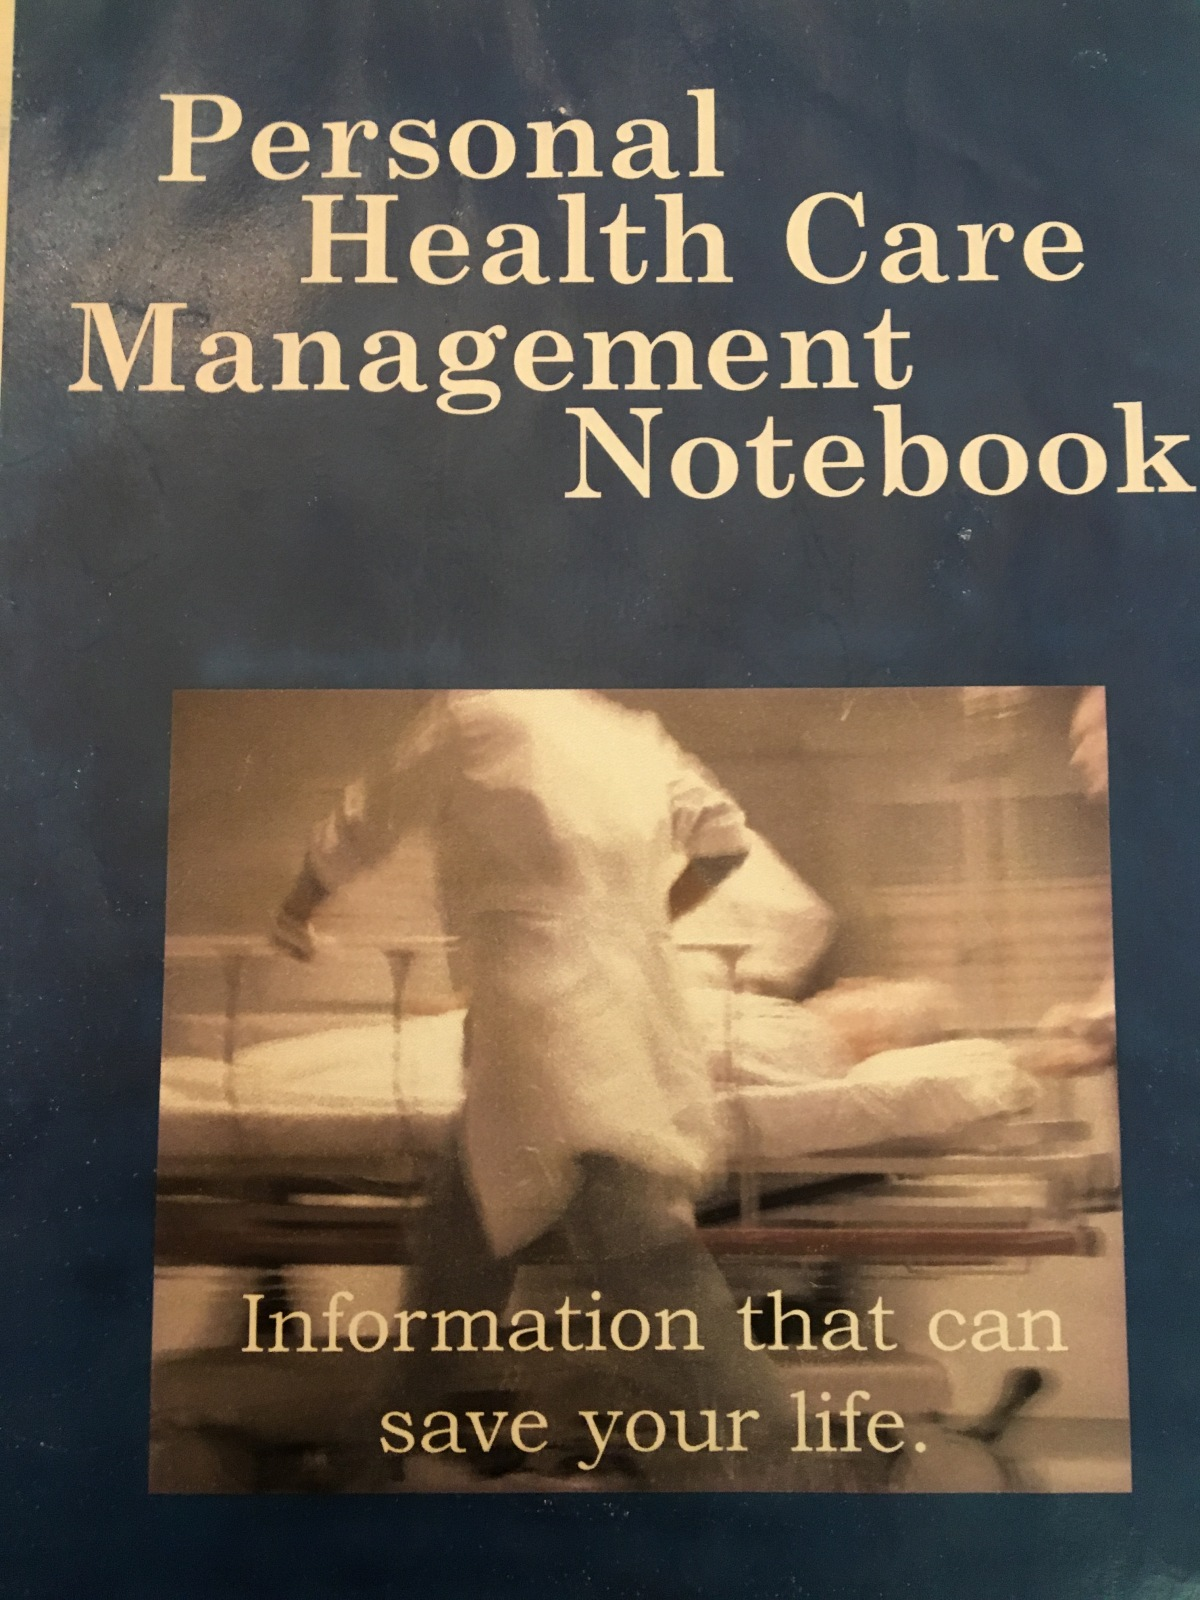 Better Patient Tracking & Reporting of Symptoms Promotes BetterCare